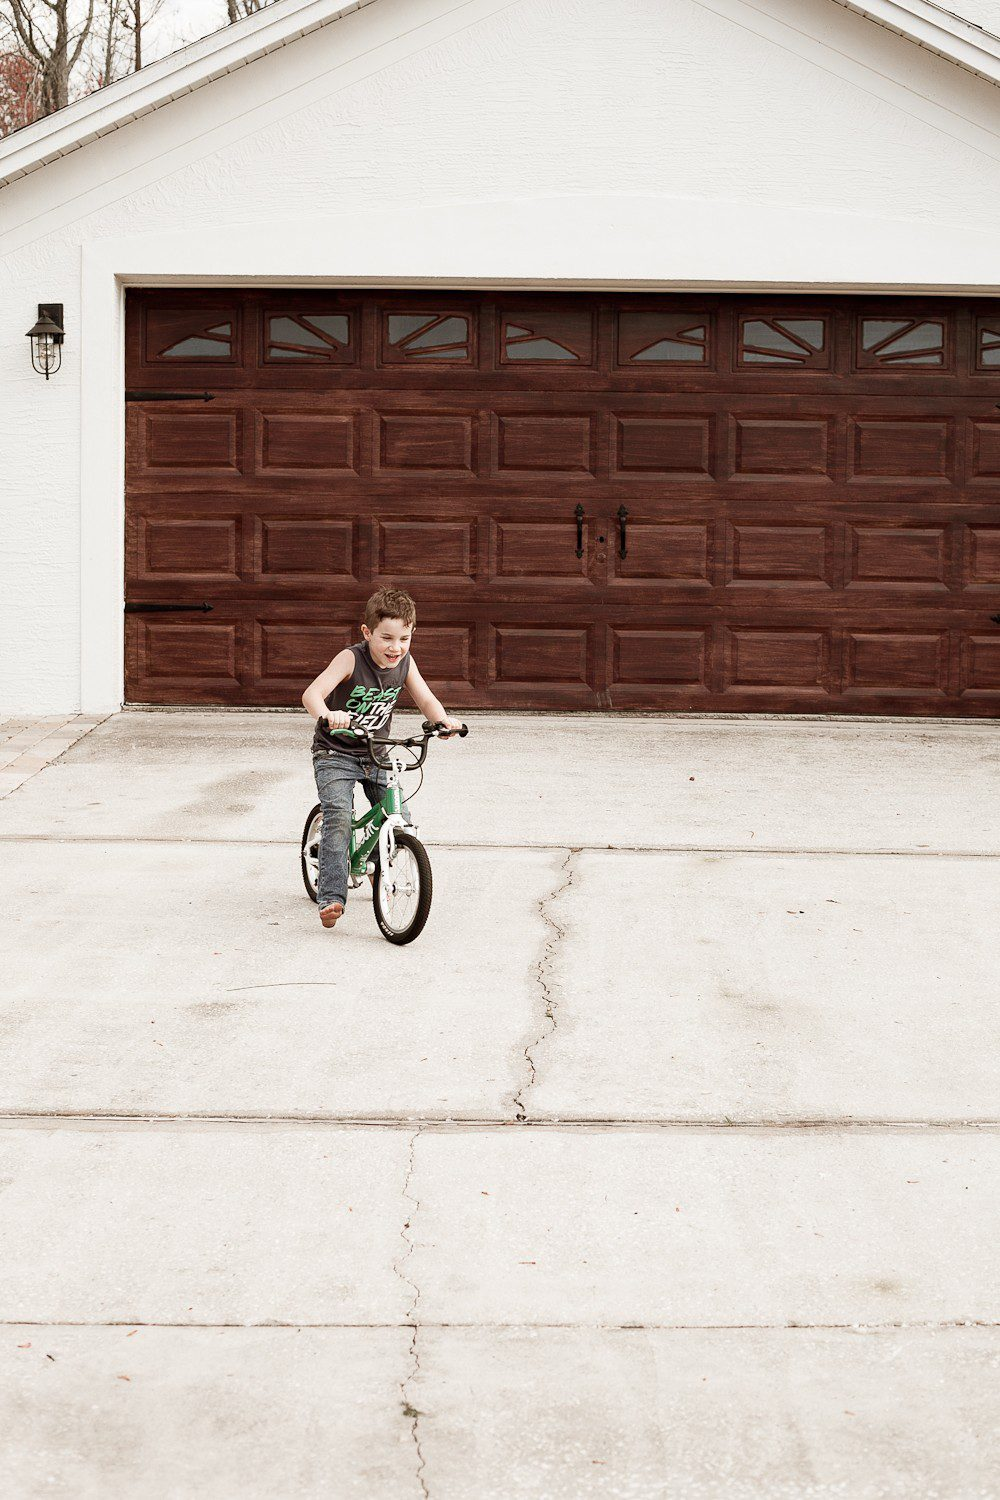 Tips for a DIY Garage Door Makeover and how to Gel Stain a Garage Door to Look Like Wood by popular lifestyle blogger Tabitha Blue of Fresh Mommy Blog: image of young boy riding a bike in front of a white house with a faux wood garage door.